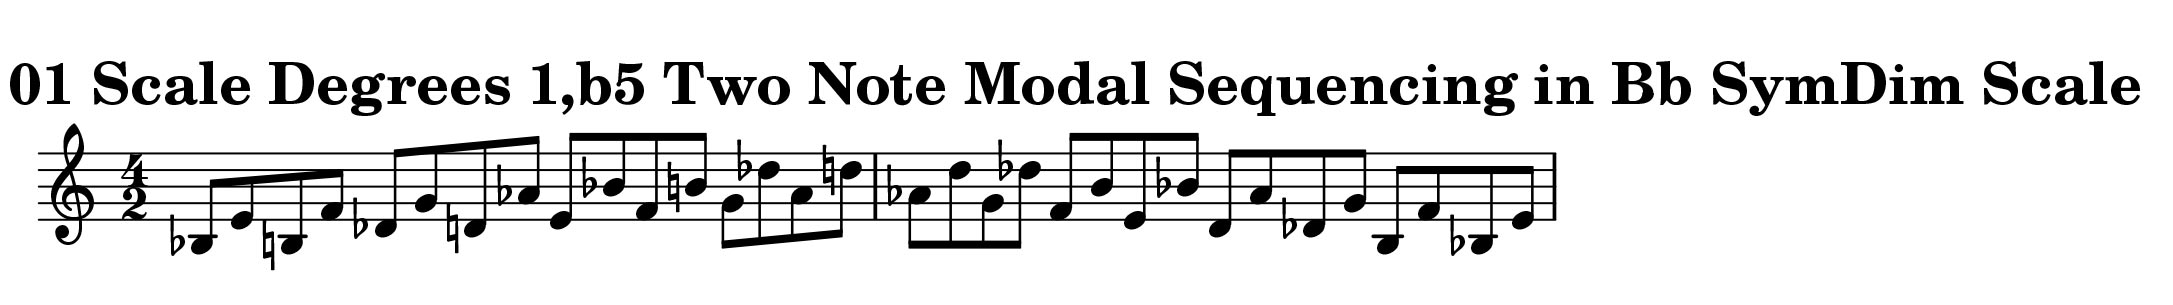 Bb Symmetrical Diminished Scale Modal Sequencing 2 Note Group 3 for all instrumentalist by Bruce Arnold for Muse Eek Publishing Company